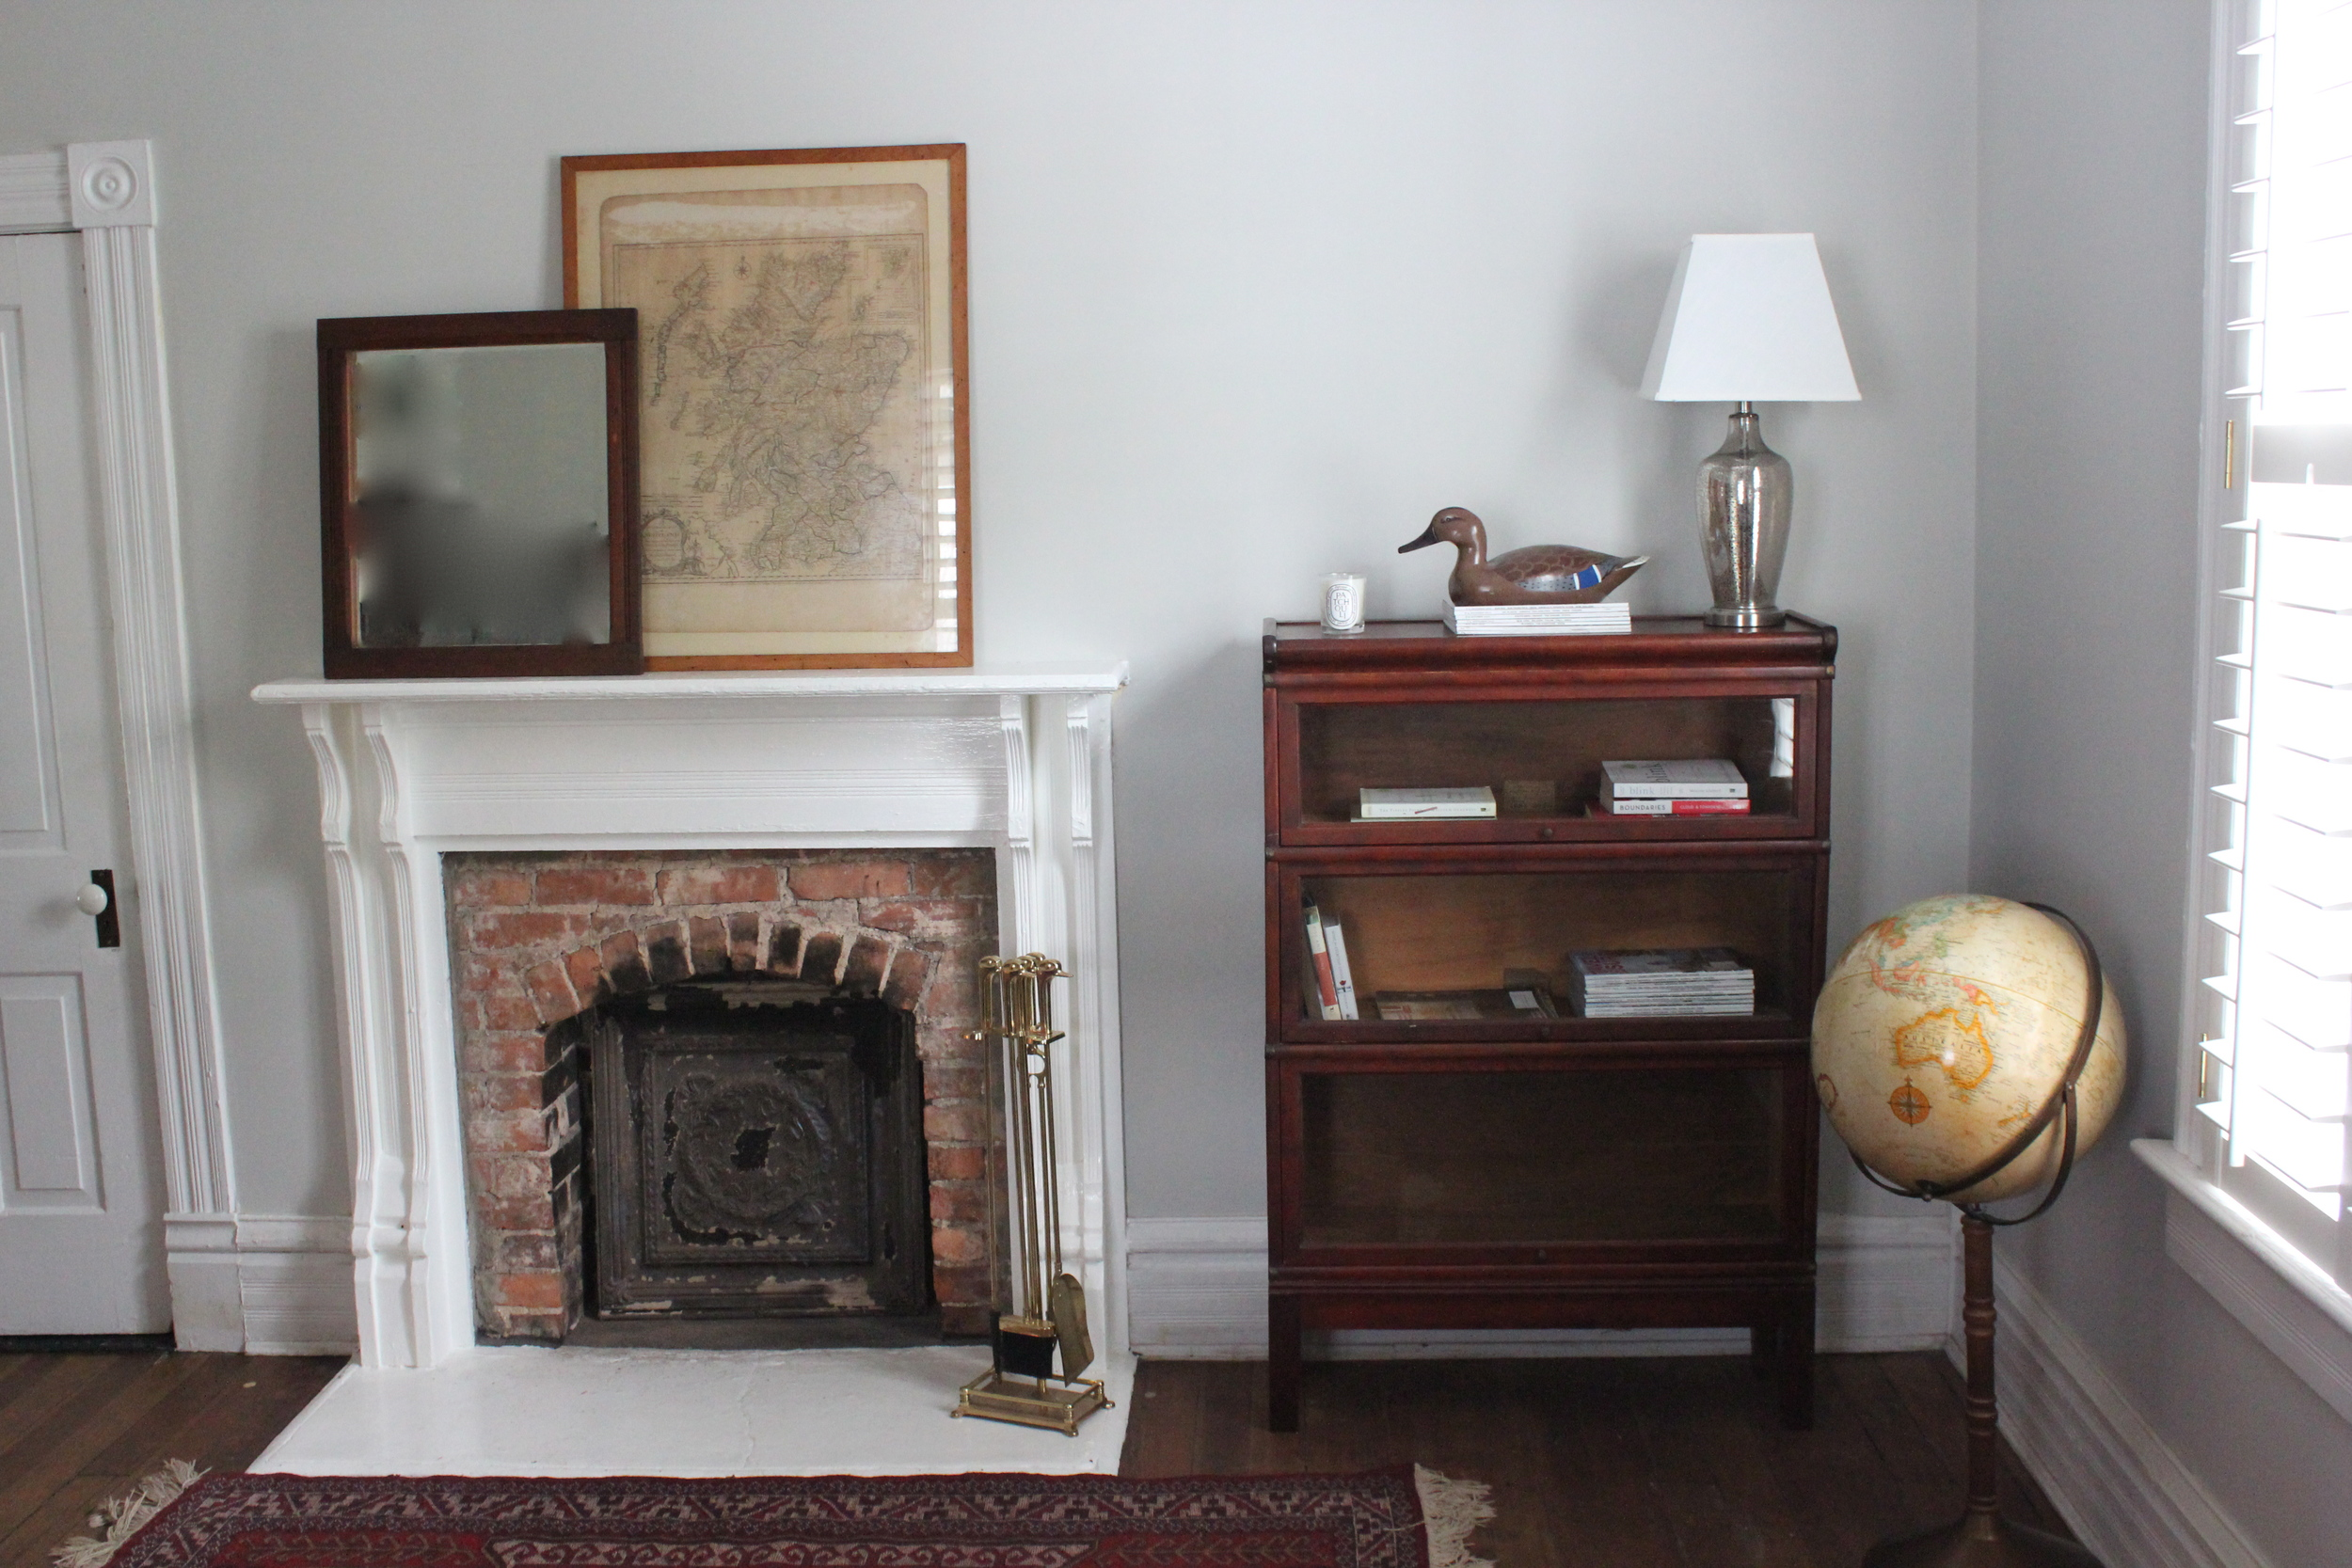 This is a corner of their house where I put most of my items. On the mantle is a map of Scotland dated from 1776 ($498) behind an Eastlake style wall mirror ($275). In front of the fireplace is a set of brass fireplace tools ($275). Next to the window is a vintage Replogle floor globe ($298). In the corner is a Globe Wernicke three stack barrister cabinet ($650). On top of the barrister cabinet is a hand painted duck decoy ($98).  On the floor is a vintage Persian rug ($375).